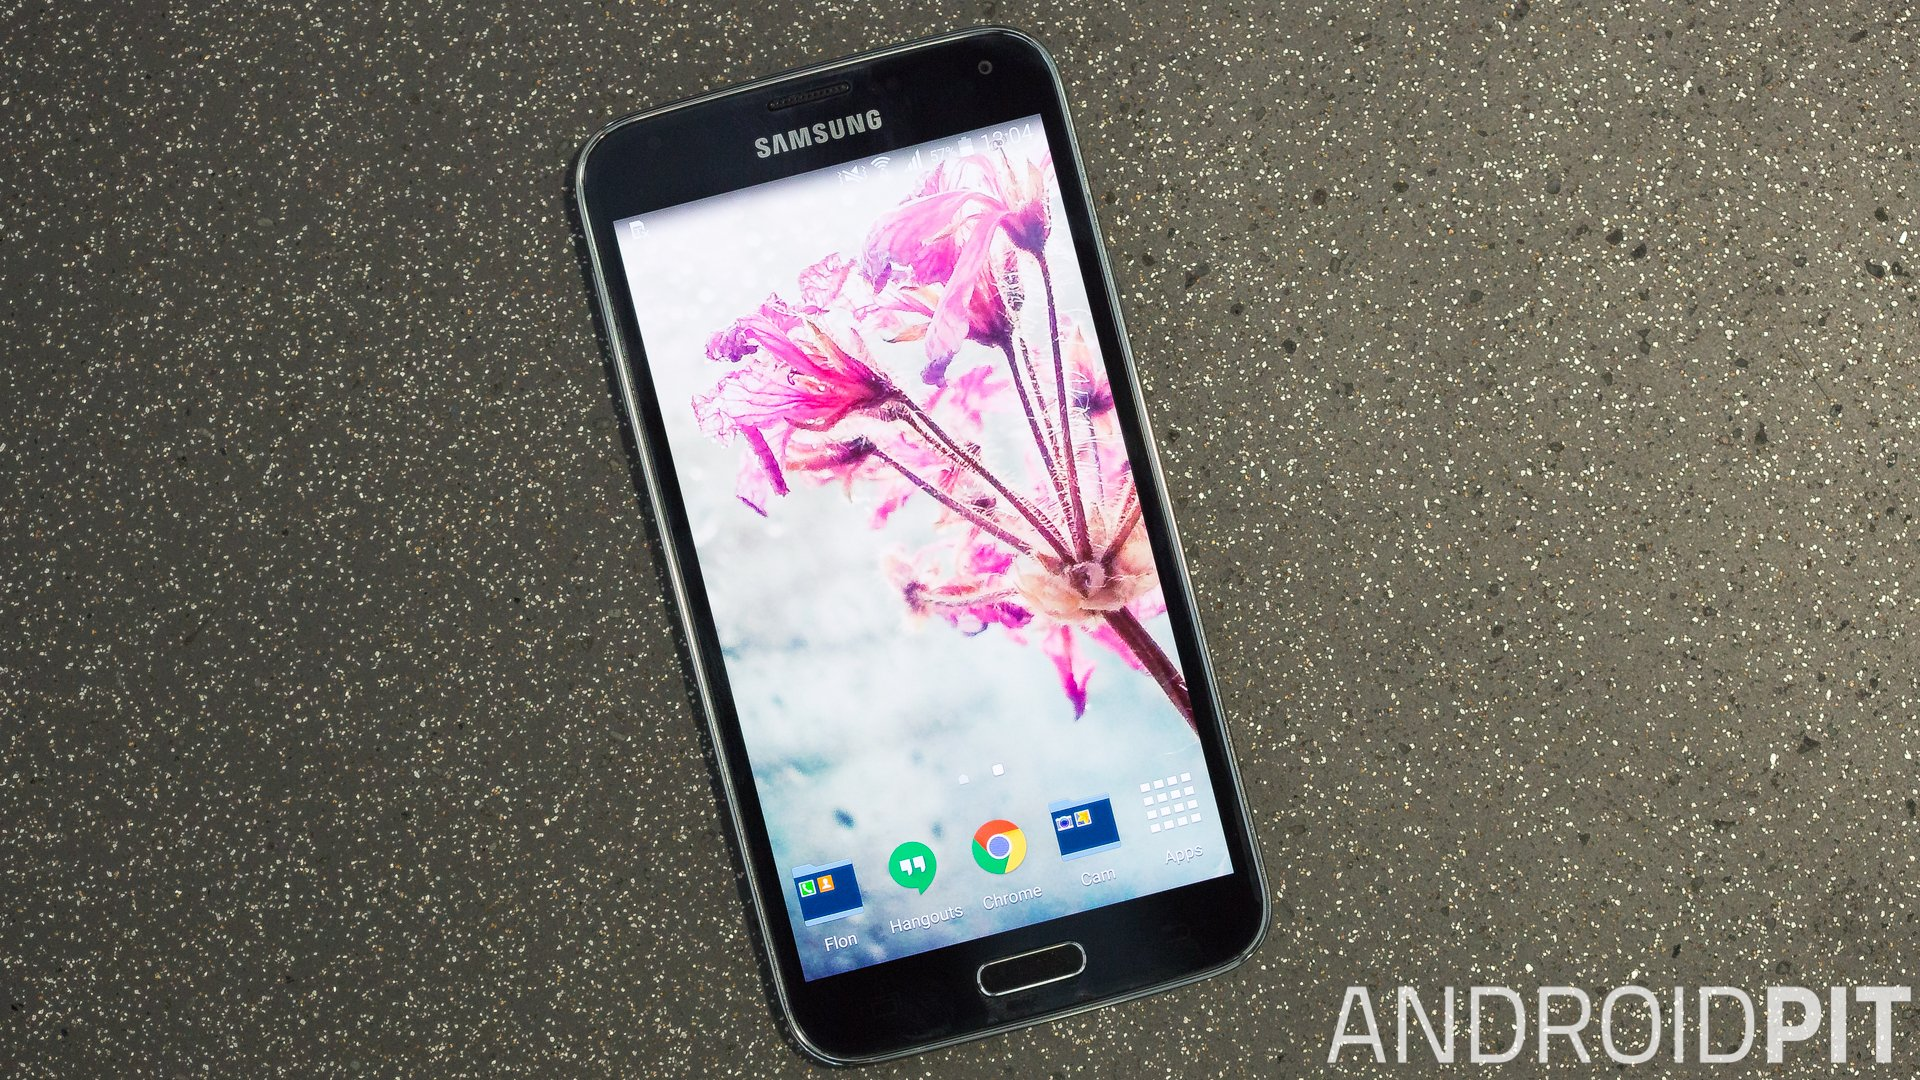 10 Common Galaxy S5 Problems And How To Fix Them